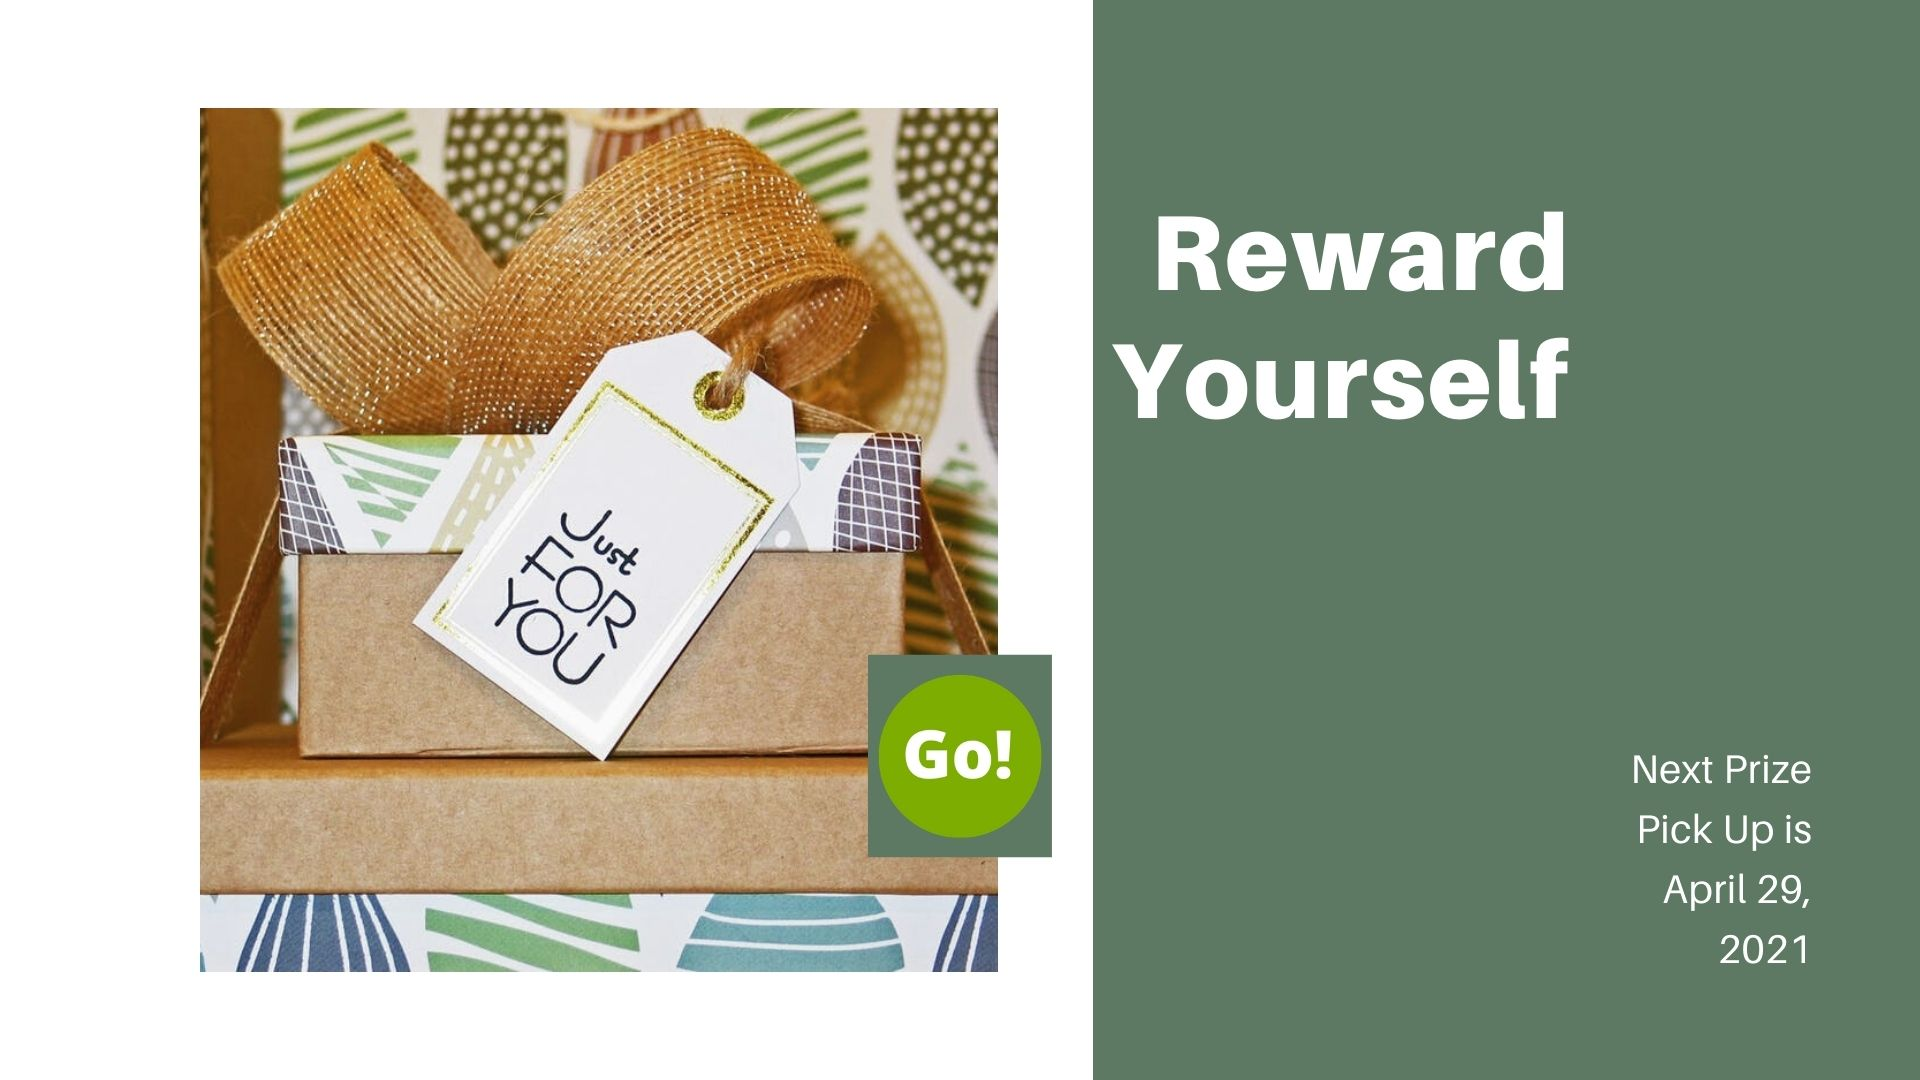 Reward Yourself With Well-Being… And Great Prizes! – +3 Prize Points